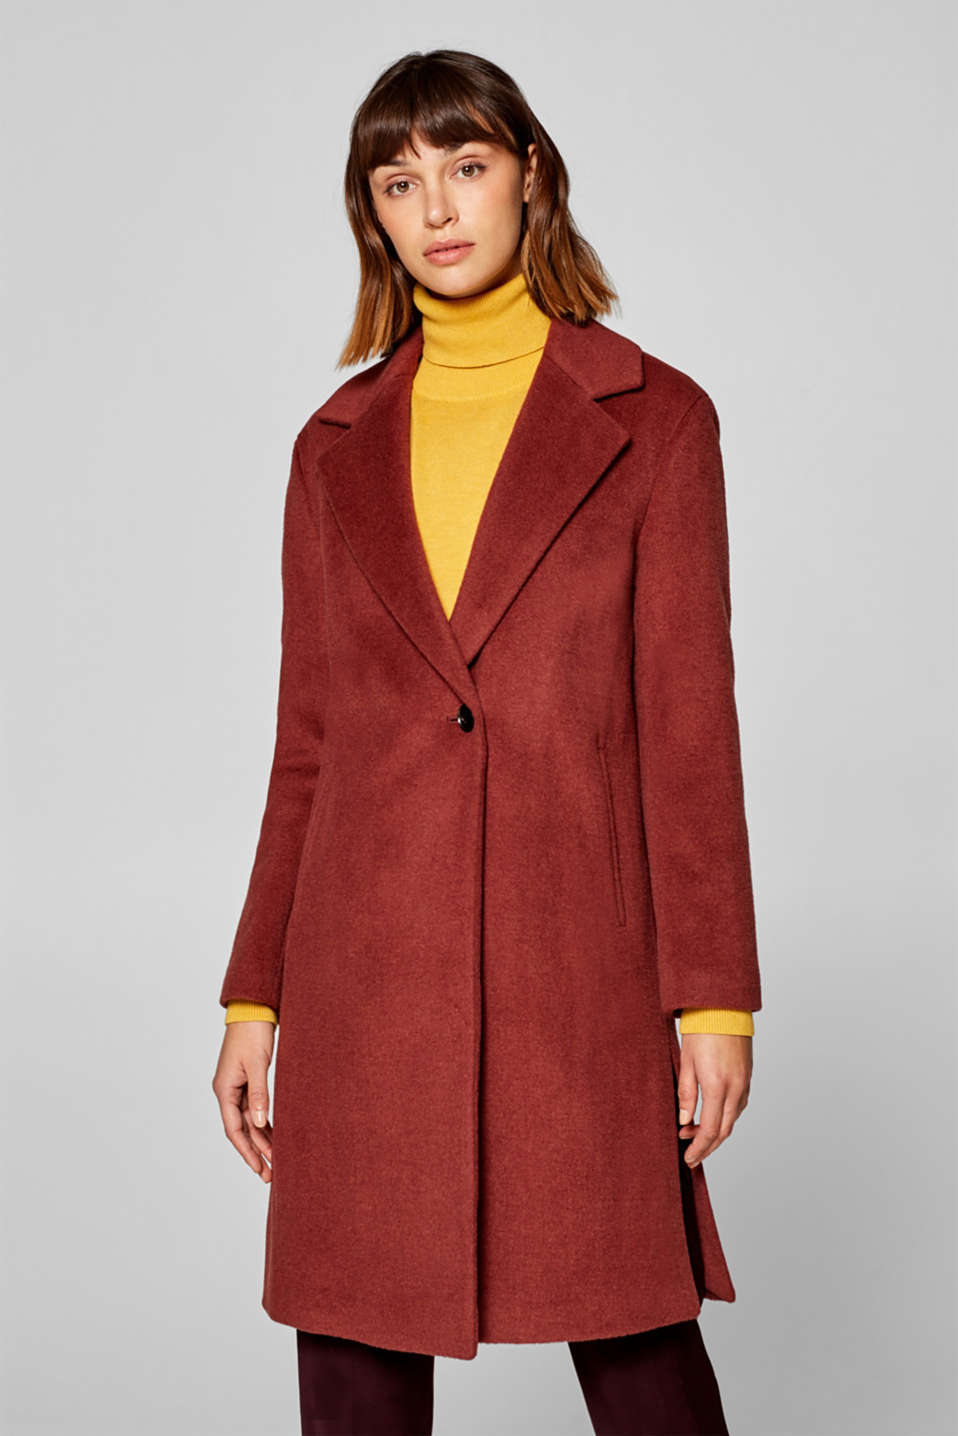 Esprit - Made of blended wool: coat with a lapel collar